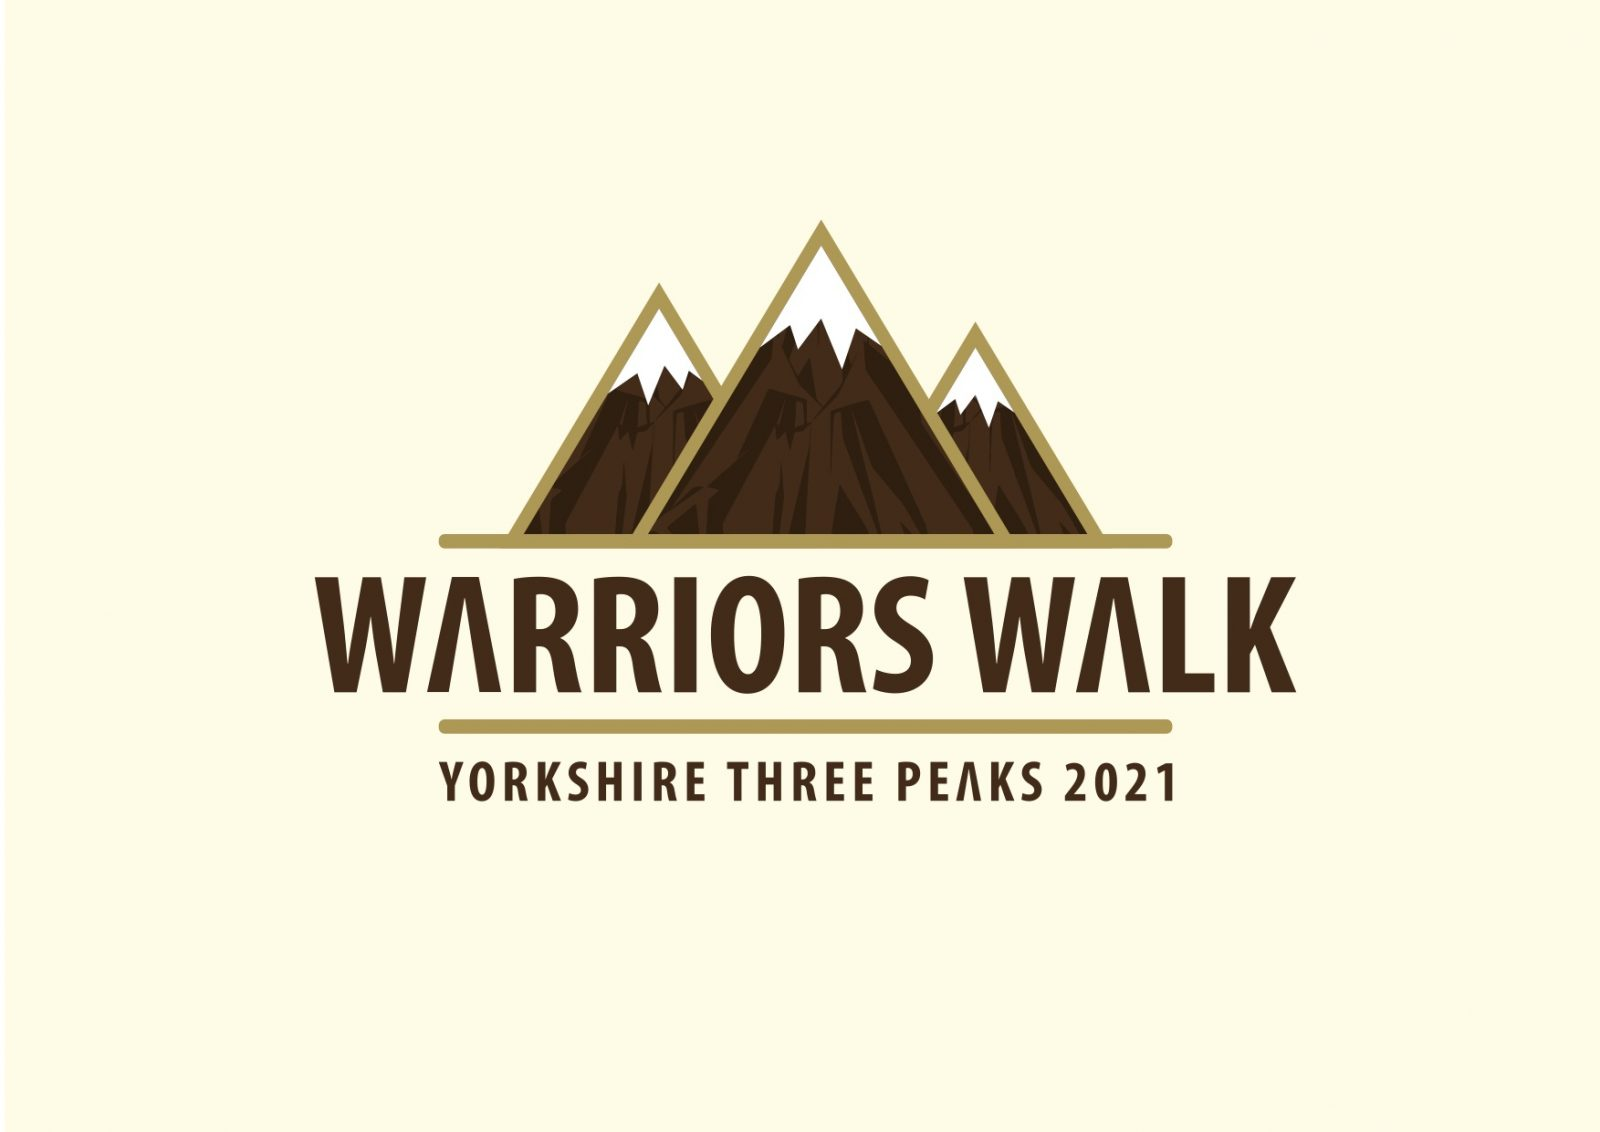 Rugby League stars get ready to tackle the Warriors Walk